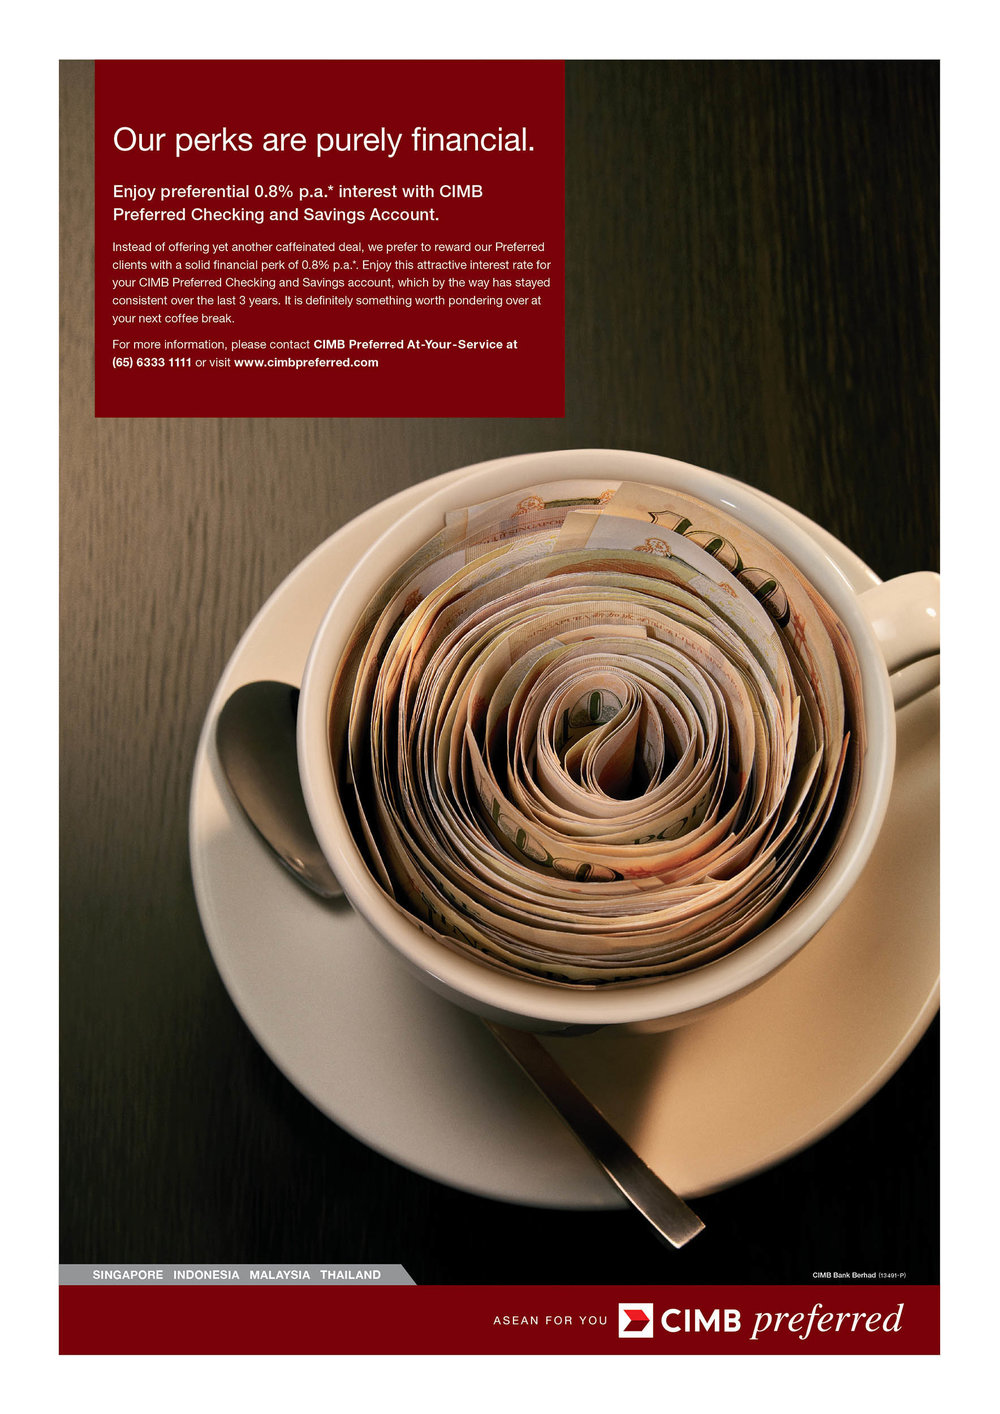 CIMB_coffee2.jpg